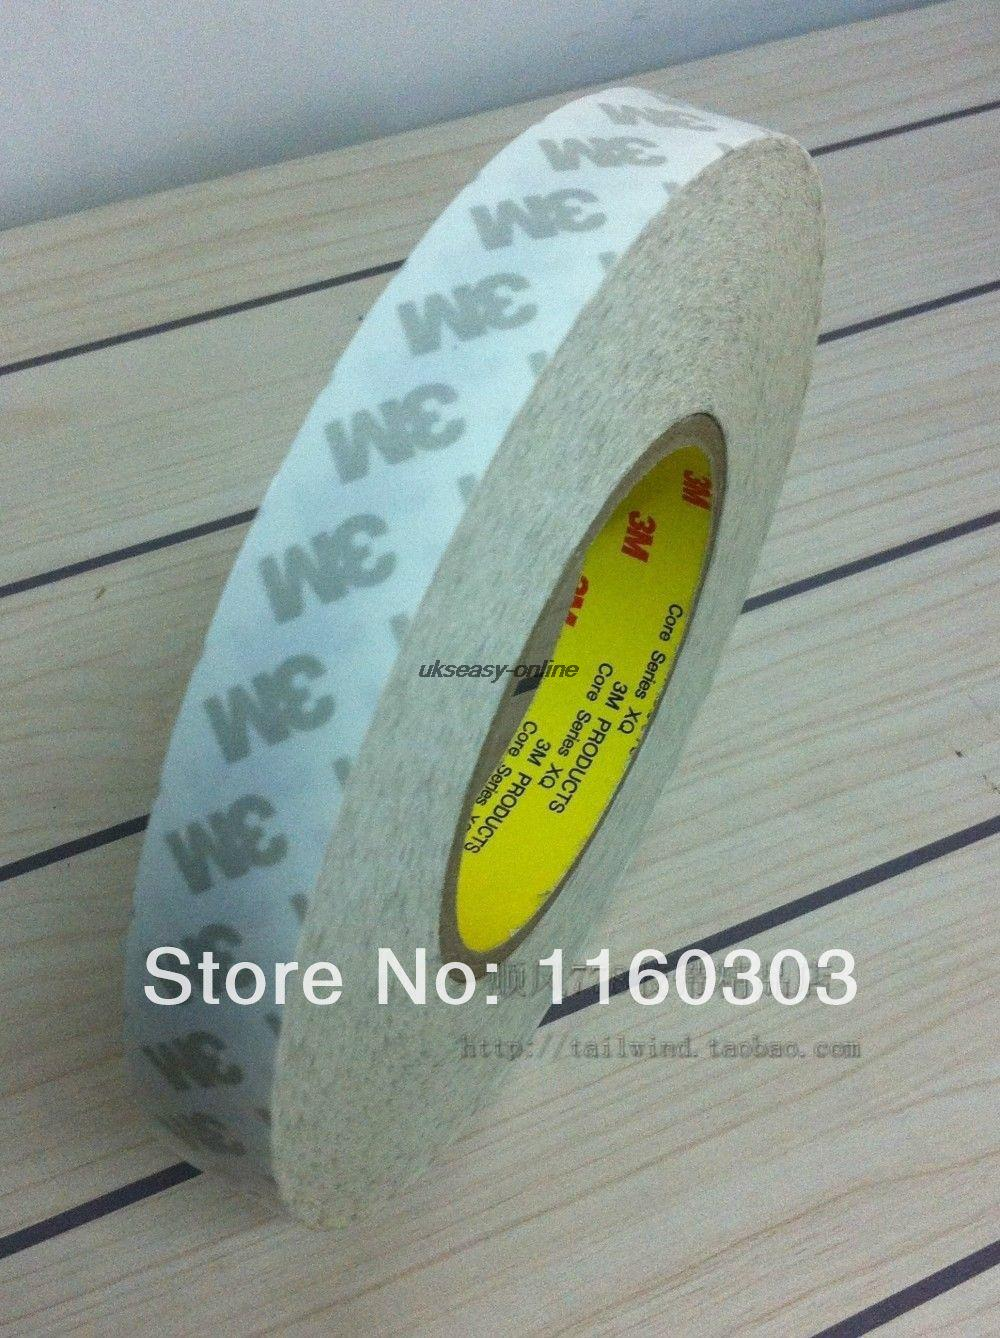 New 20mm Double Sided Tape 3M Adhesive Tape for Led strips, LCD screen,car light yitap 25 lot double side pet double sided adhesive tape for lcd screen double sided tape